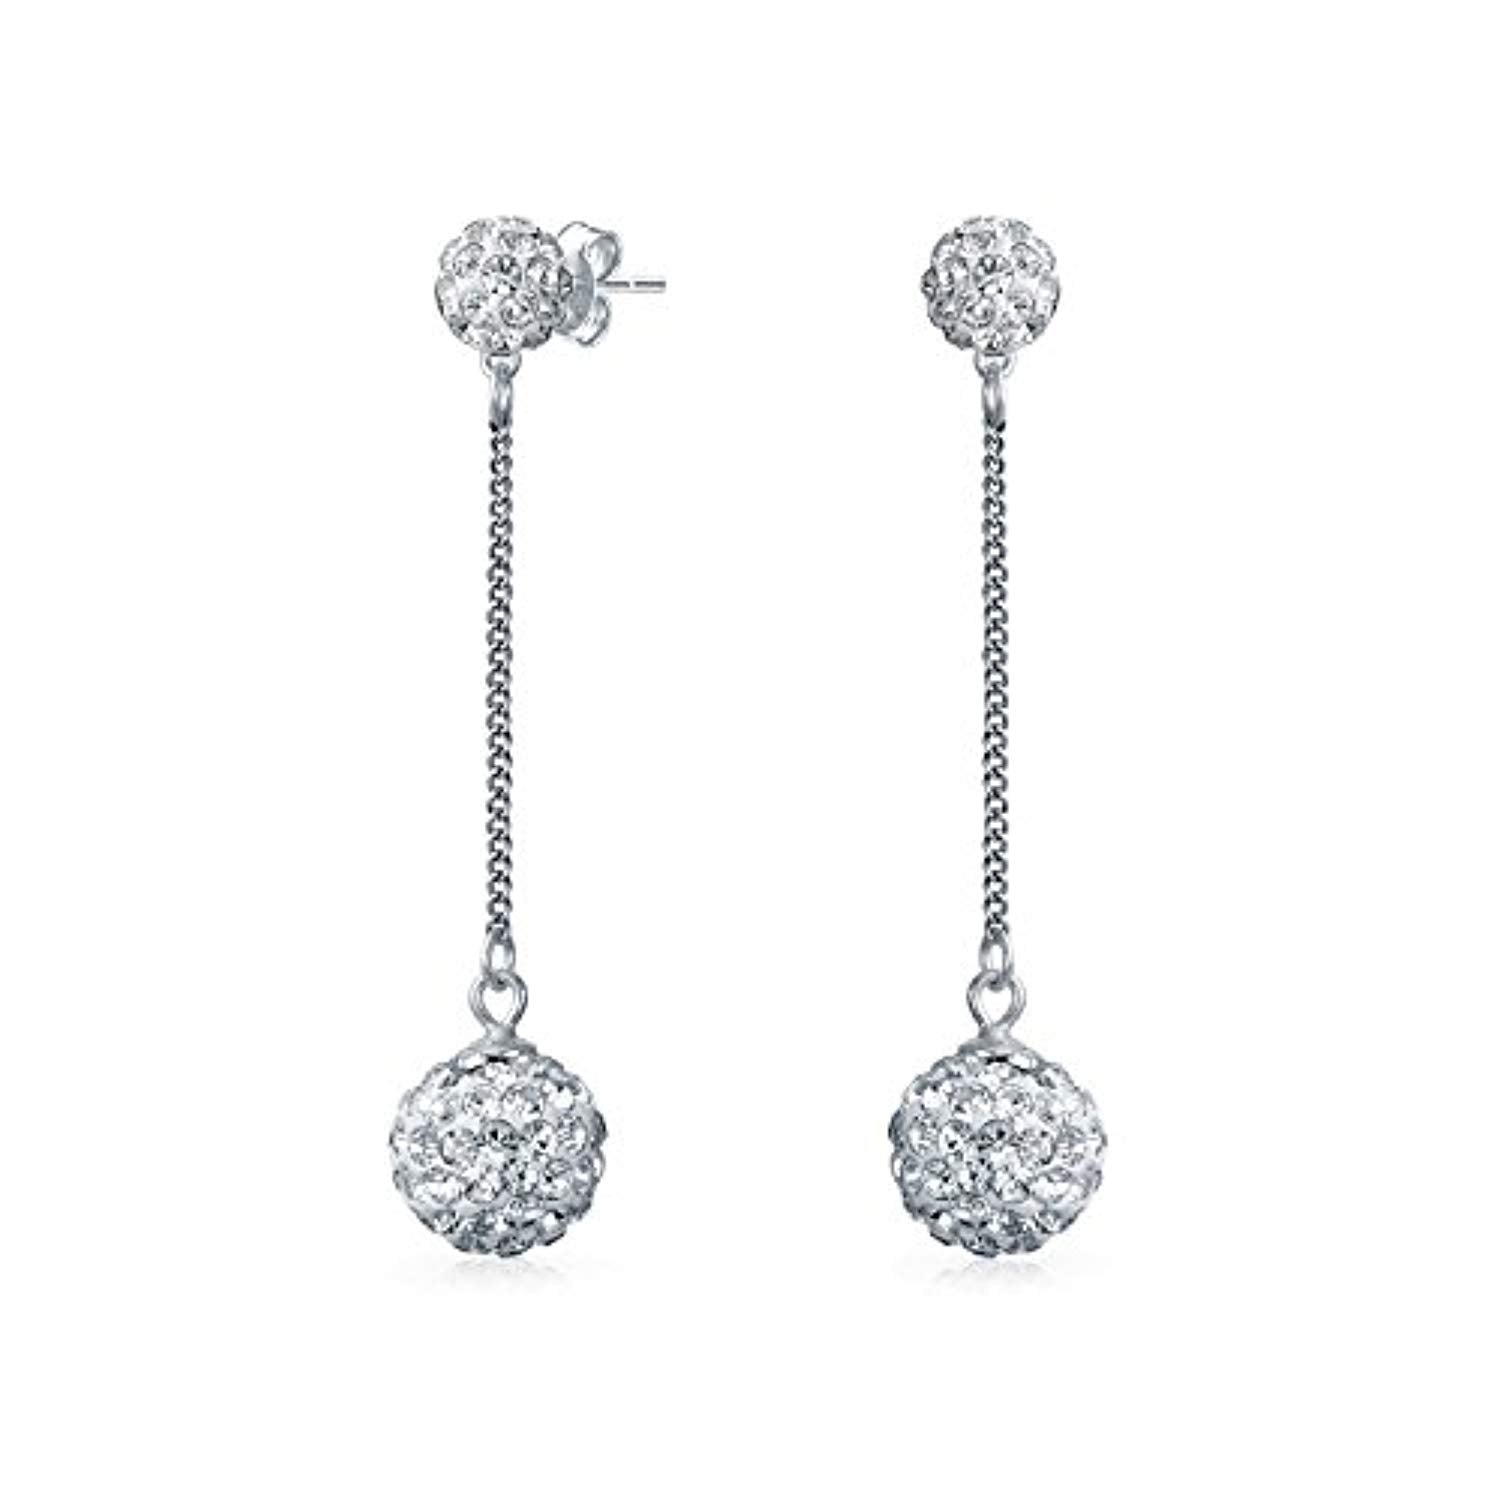 White Crystal Pave Round Double Disco Ball Drop Linear Prom Pageant Dangle Earrings For Women 925 Sterling Silver